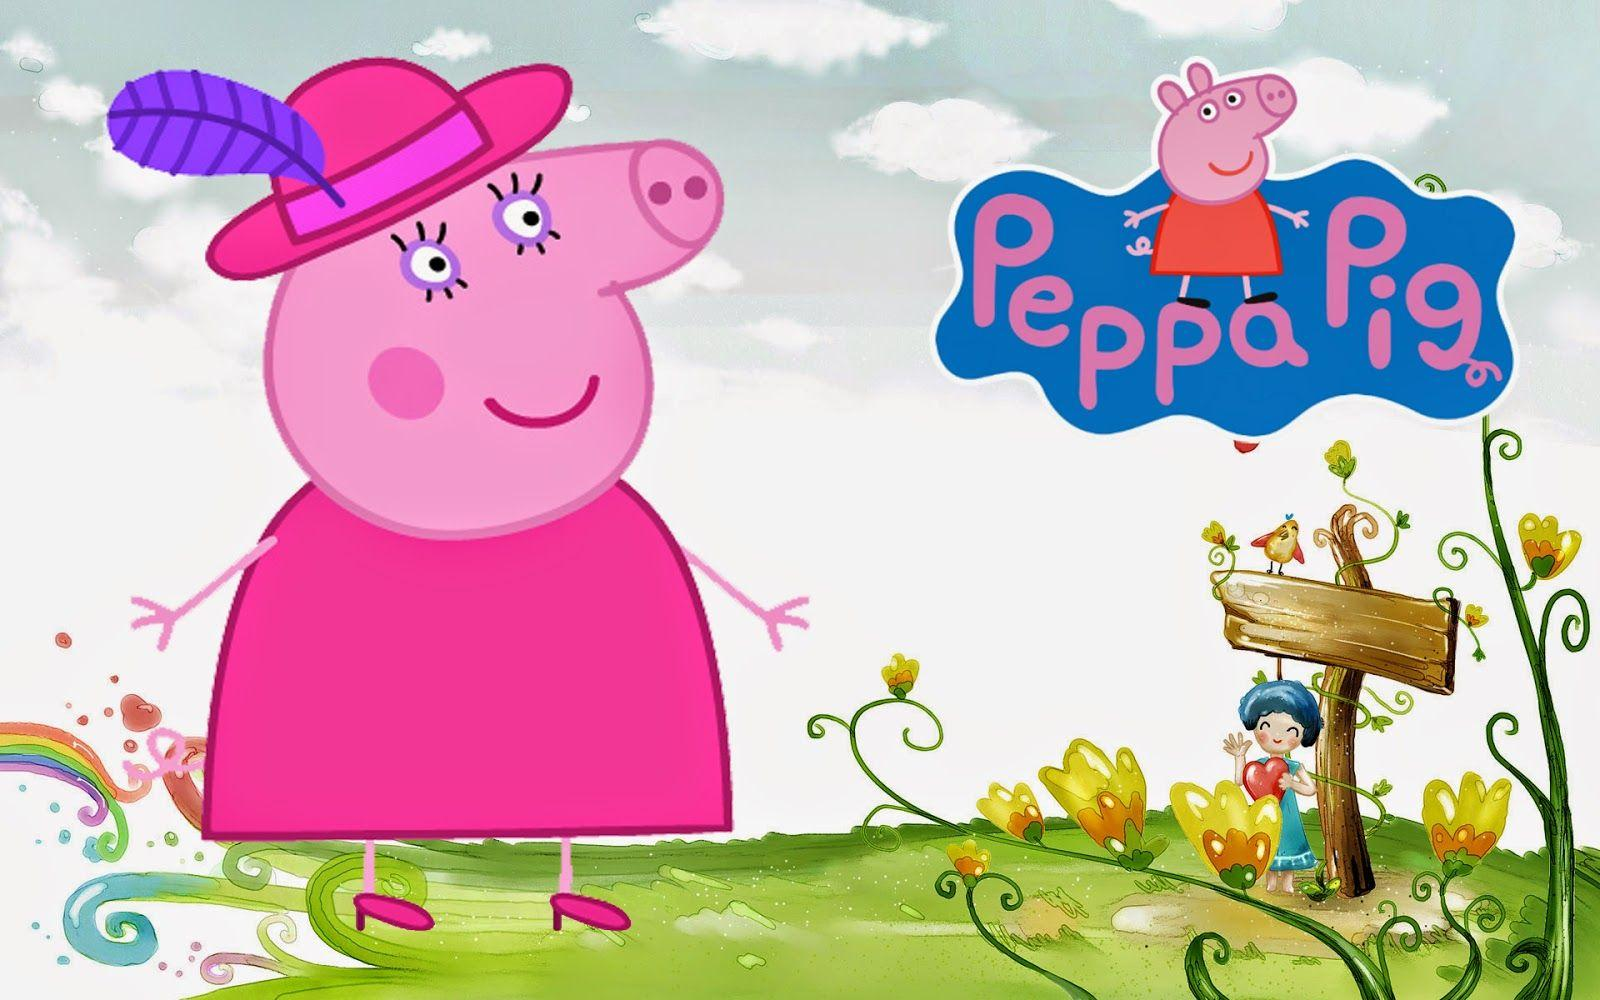 Disney HD Wallpapers: Peppa Pig Cartoon HD Wallpapers